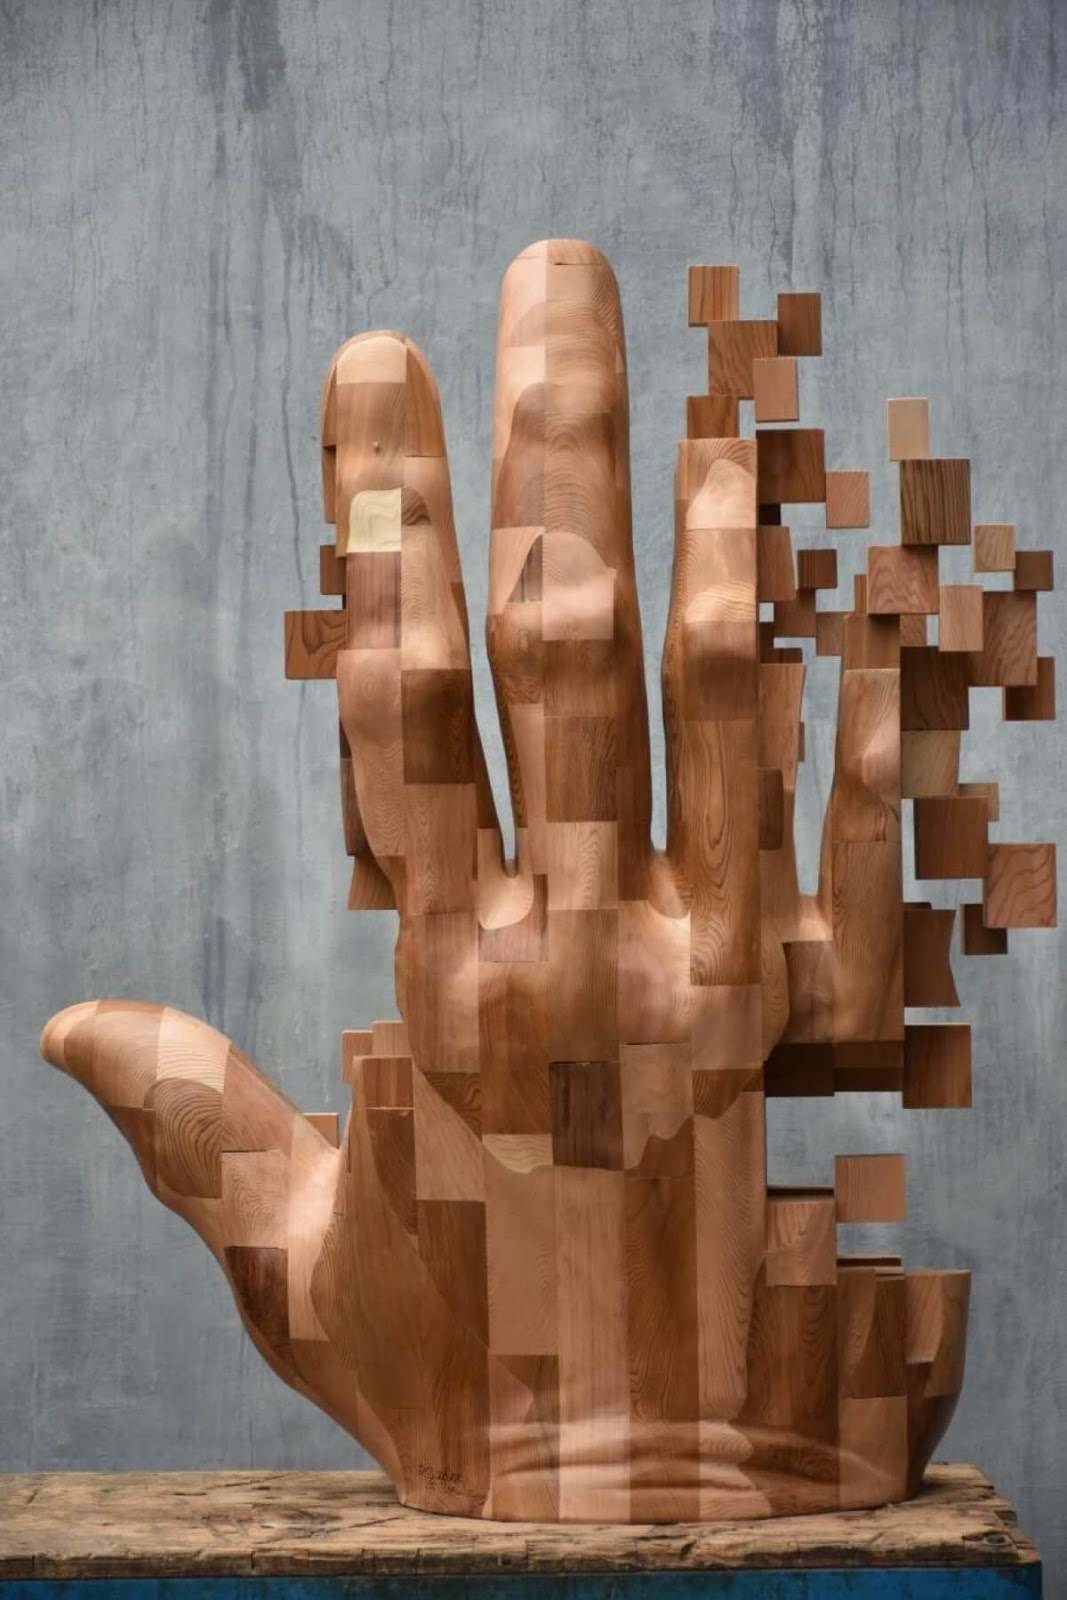 Stunning Wood Sculptures That Look Like Pixelated Glitches